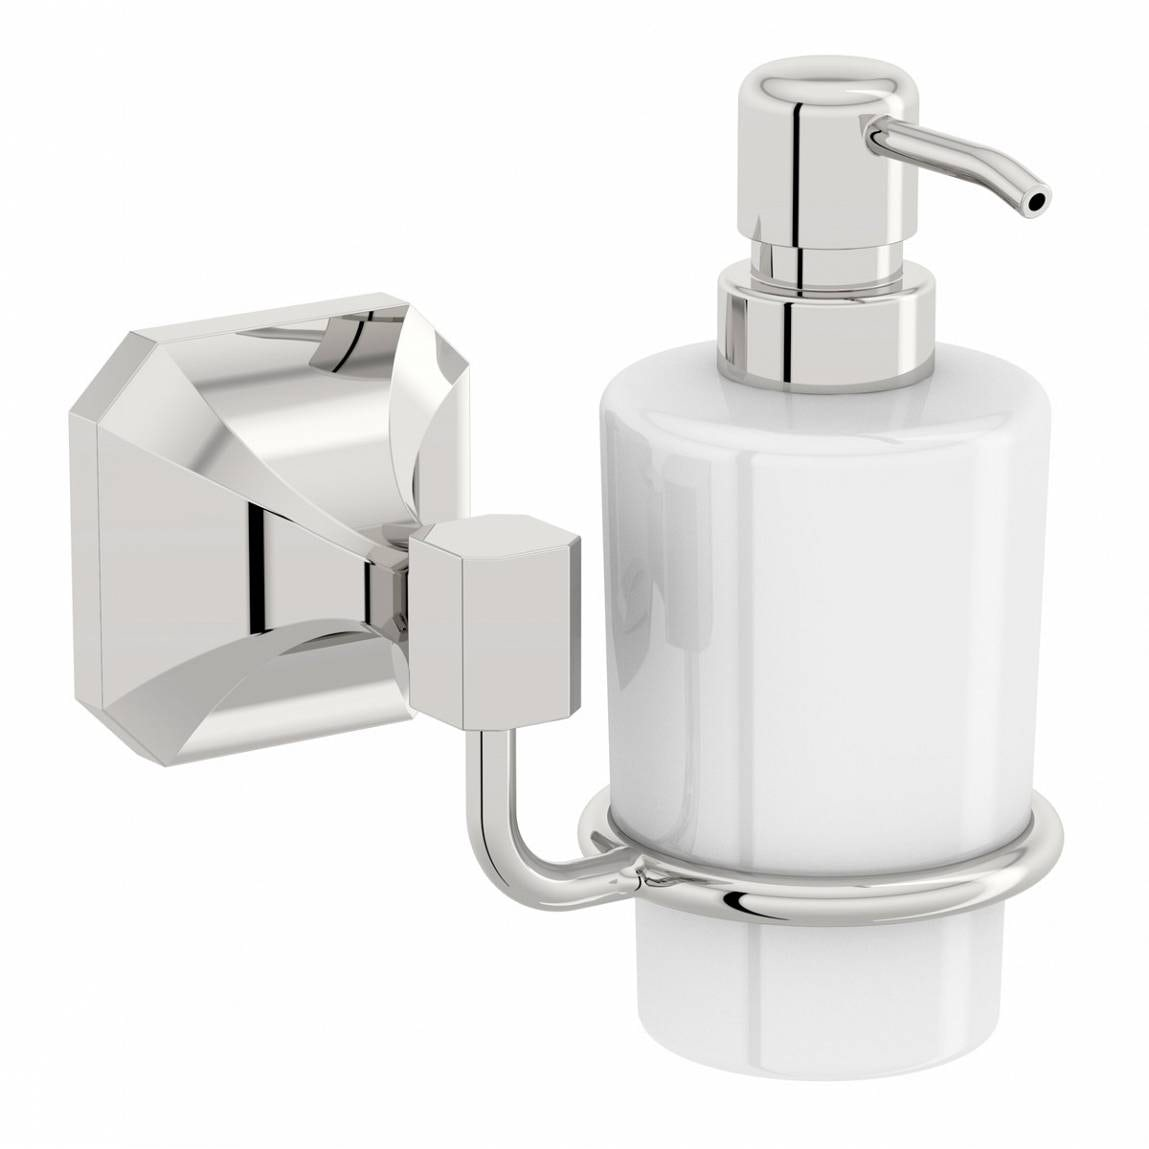 Camberley Ceramic Soap Pump Dispenser